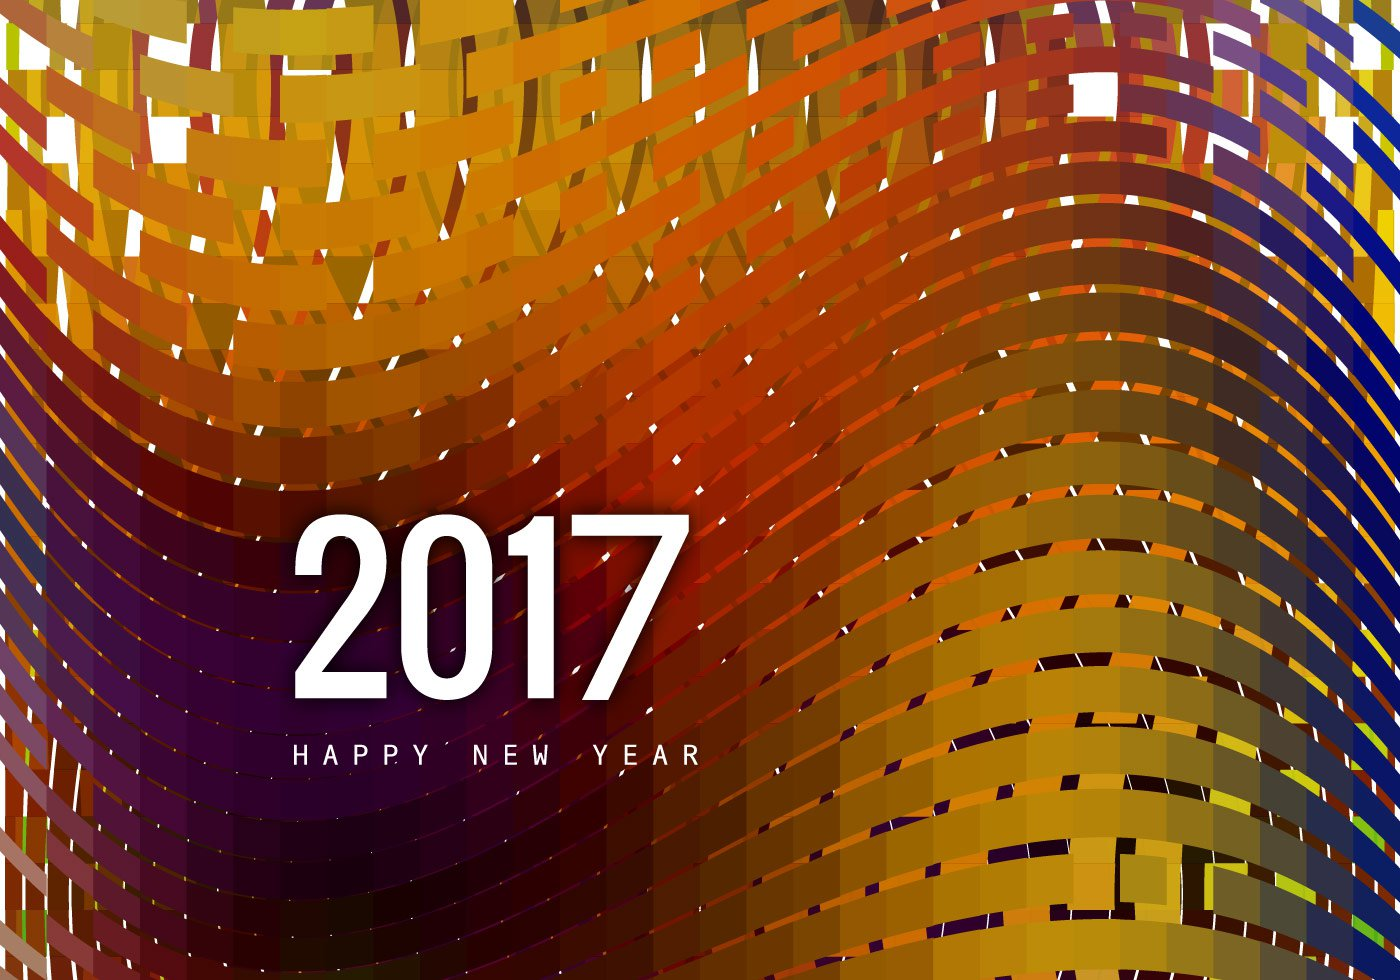 vector-greeting-card-of-happy-new-year-2017